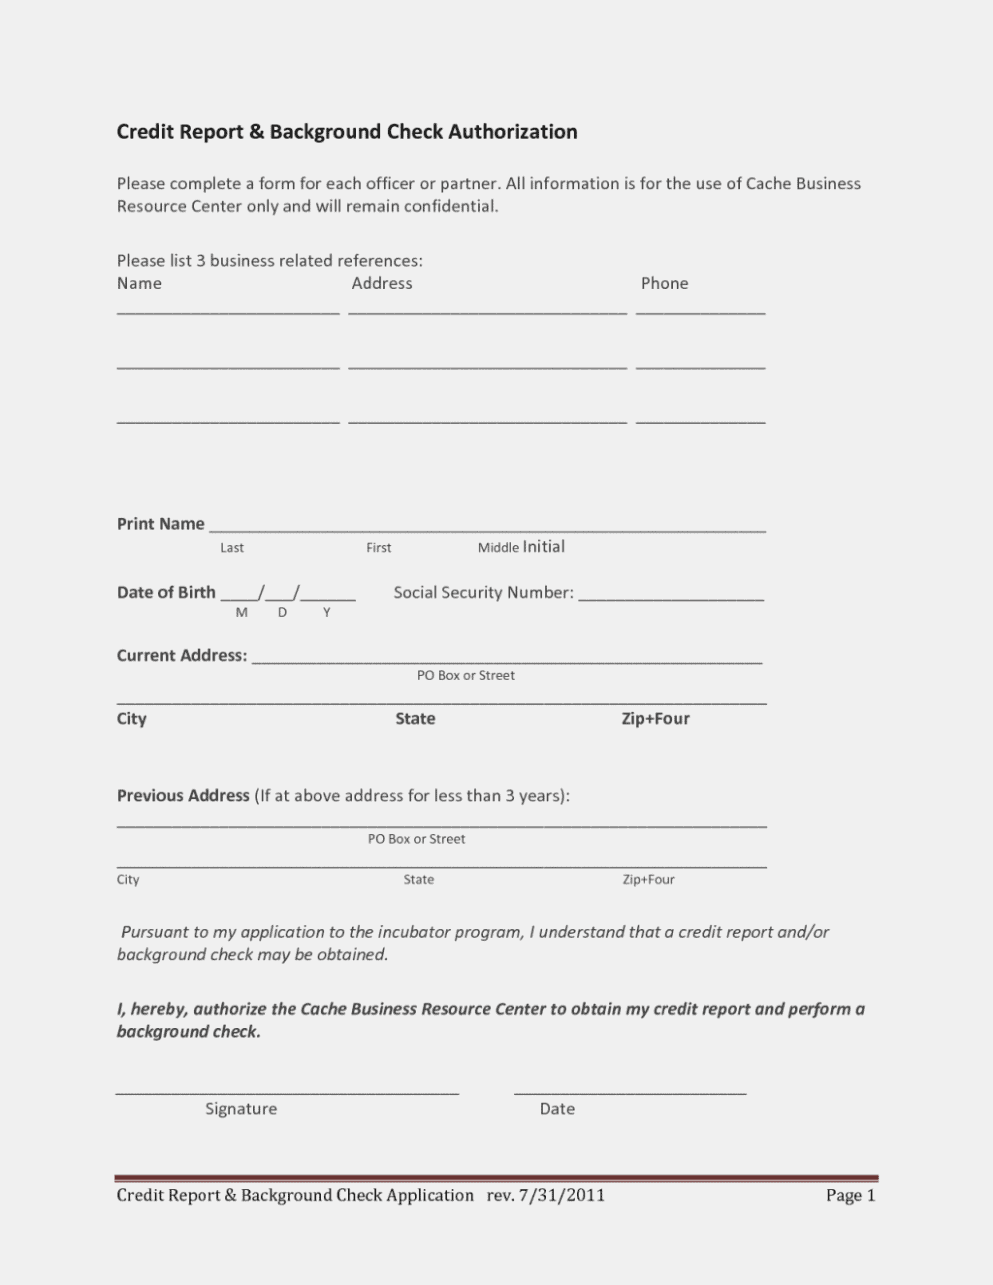 fair credit reporting act check consent form